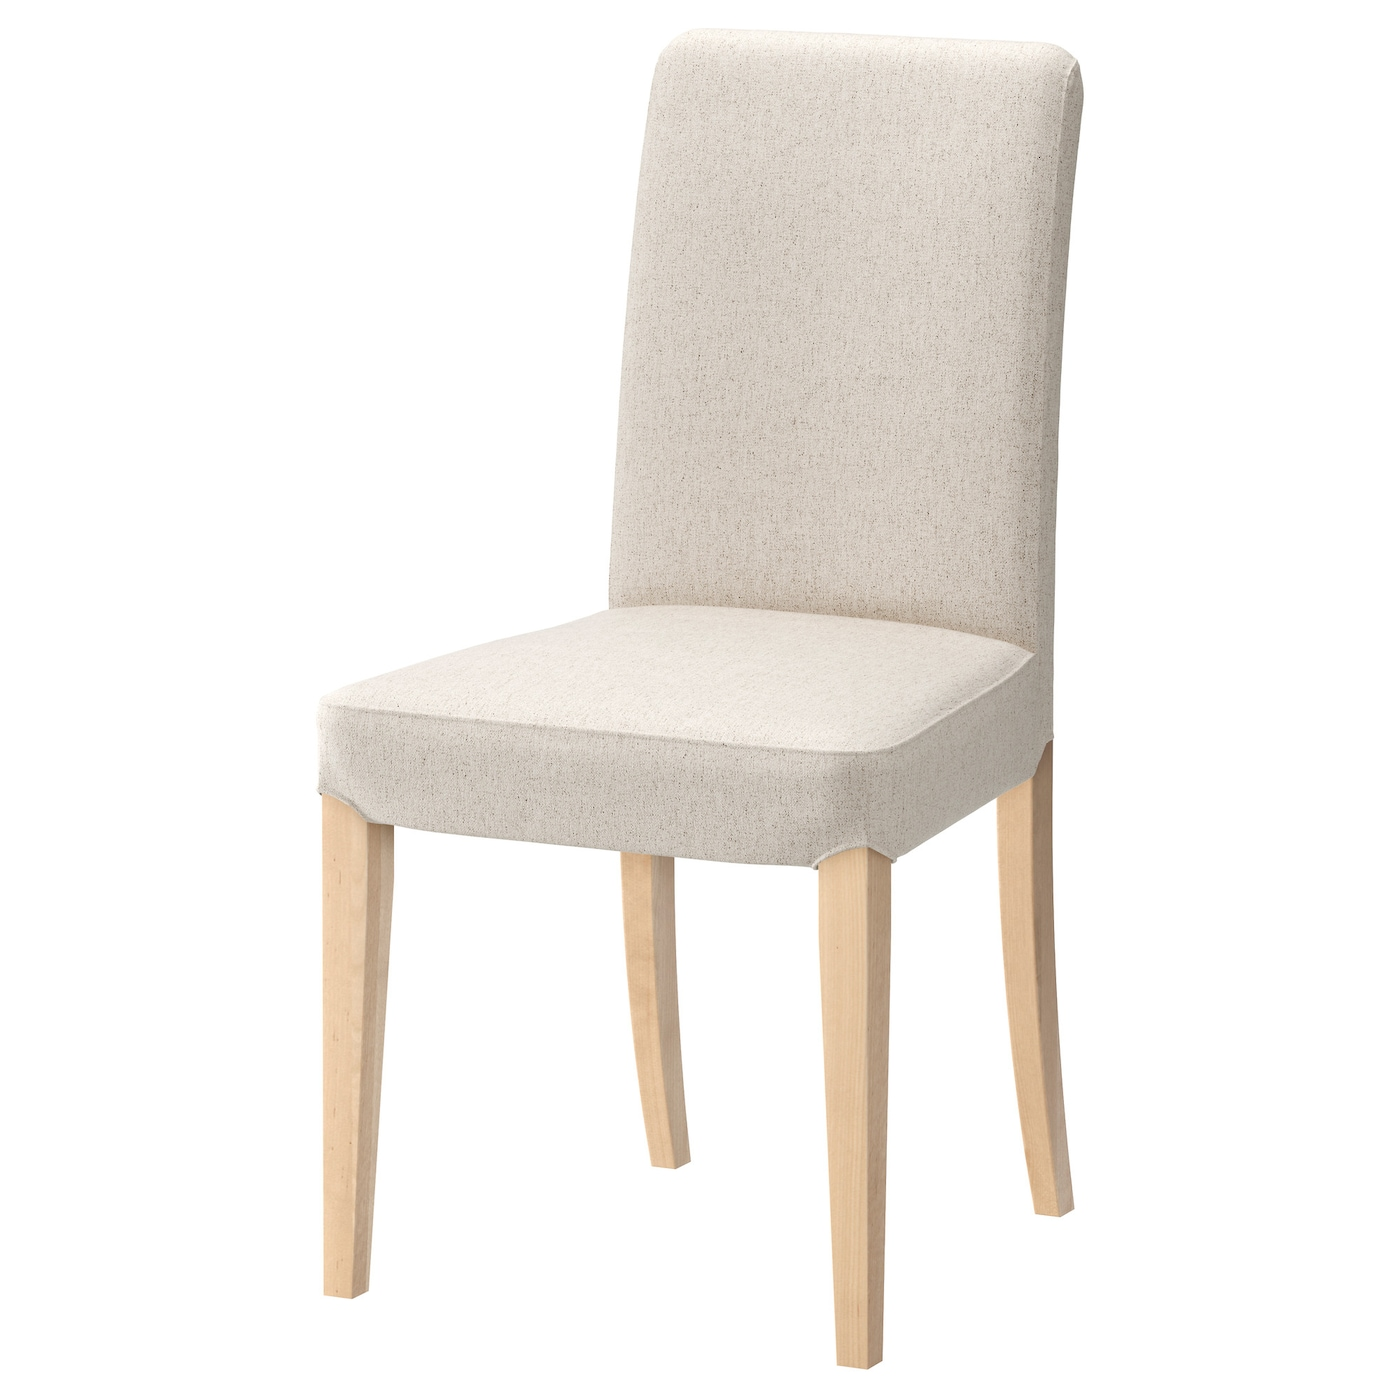 Henriksdal chair birch linneryd natural ikea for Sedia cameretta ikea